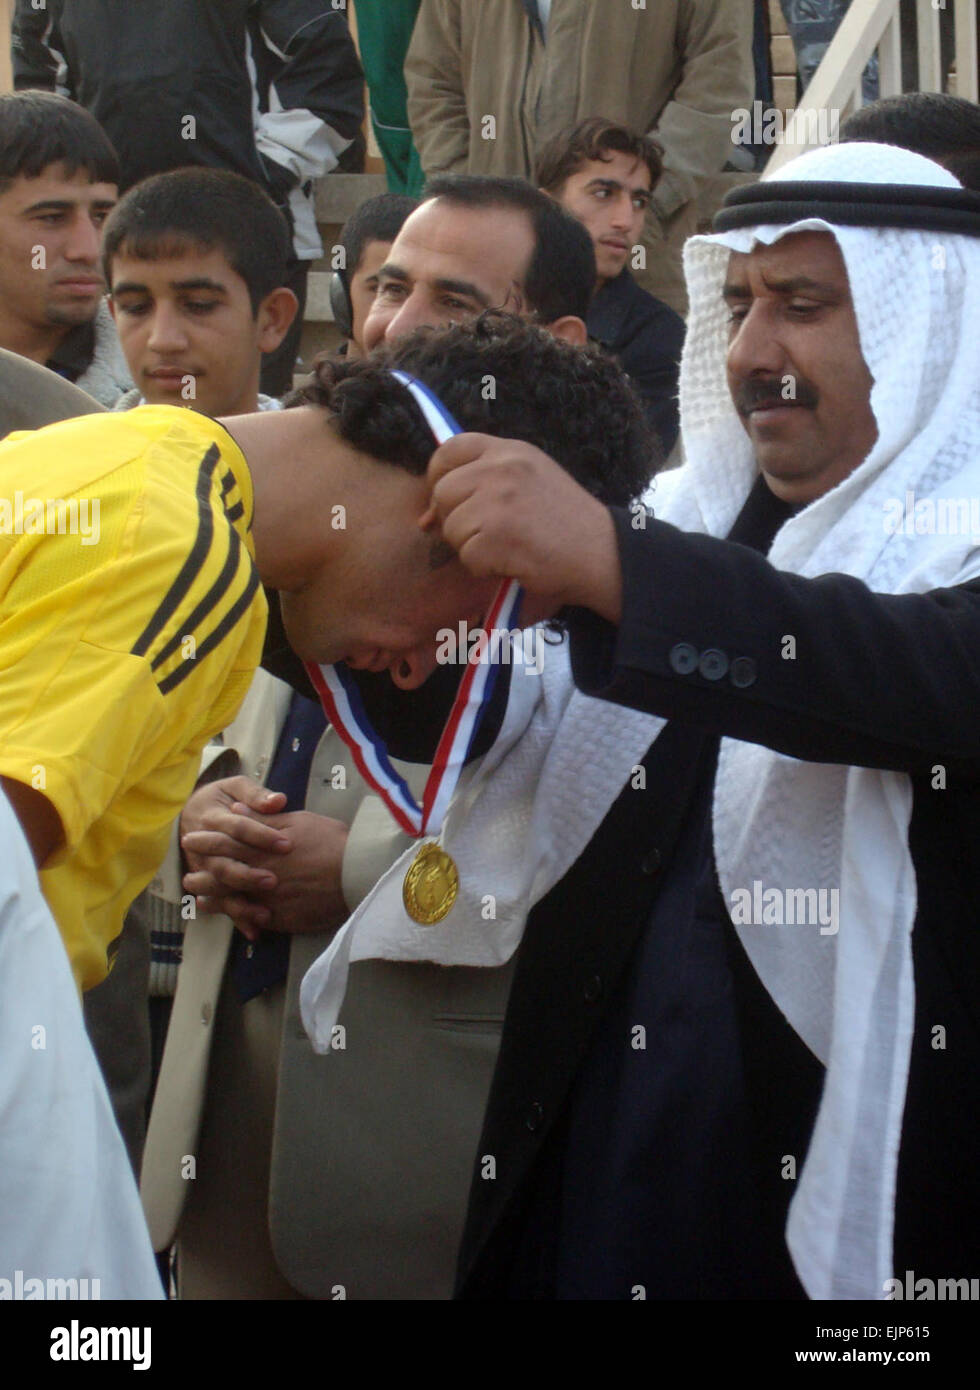 A medal is presented by a local leader to a player from the Hammamiat Soccer Club at the Taji Soccer Club Stadium, - Stock Image